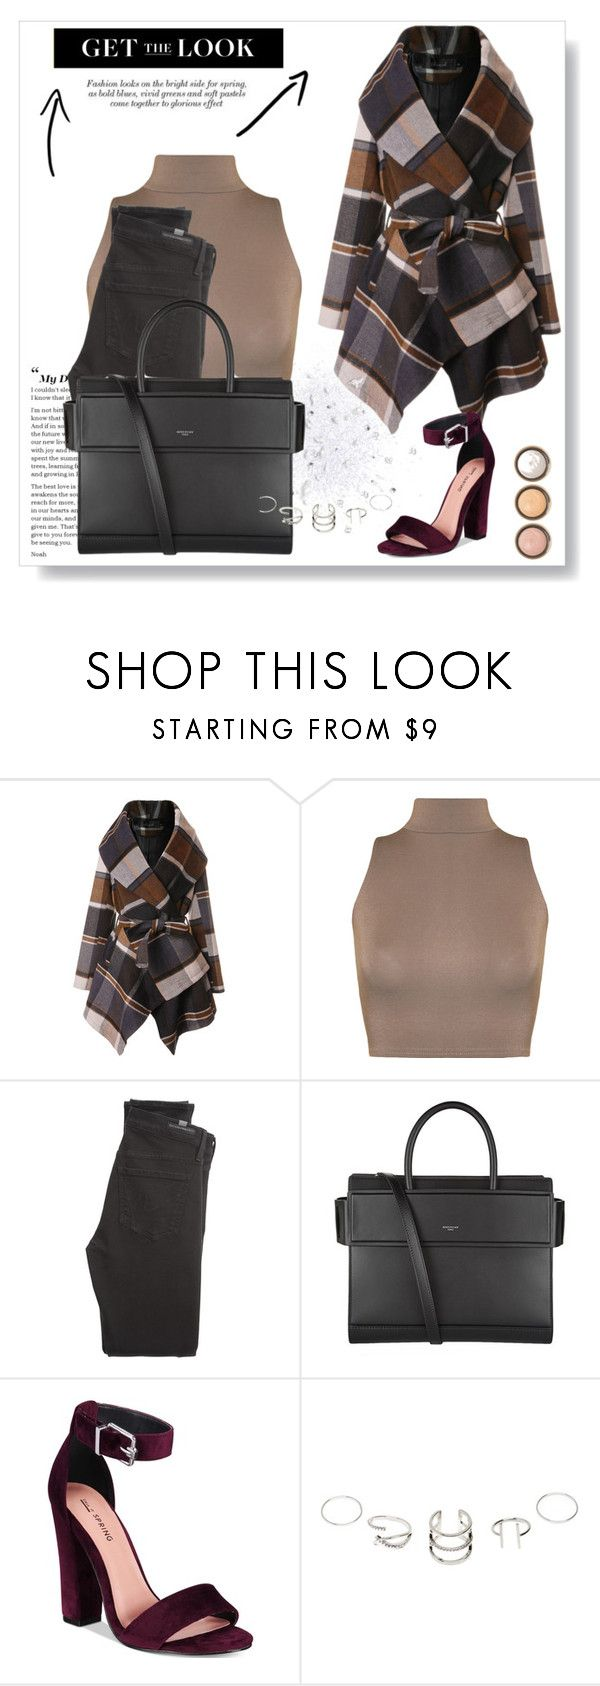 """Untitled #78"" by galg123 ❤ liked on Polyvore featuring Chicwish, WearAll, Citizens of Humanity, Givenchy, Call it SPRING and By Terry"